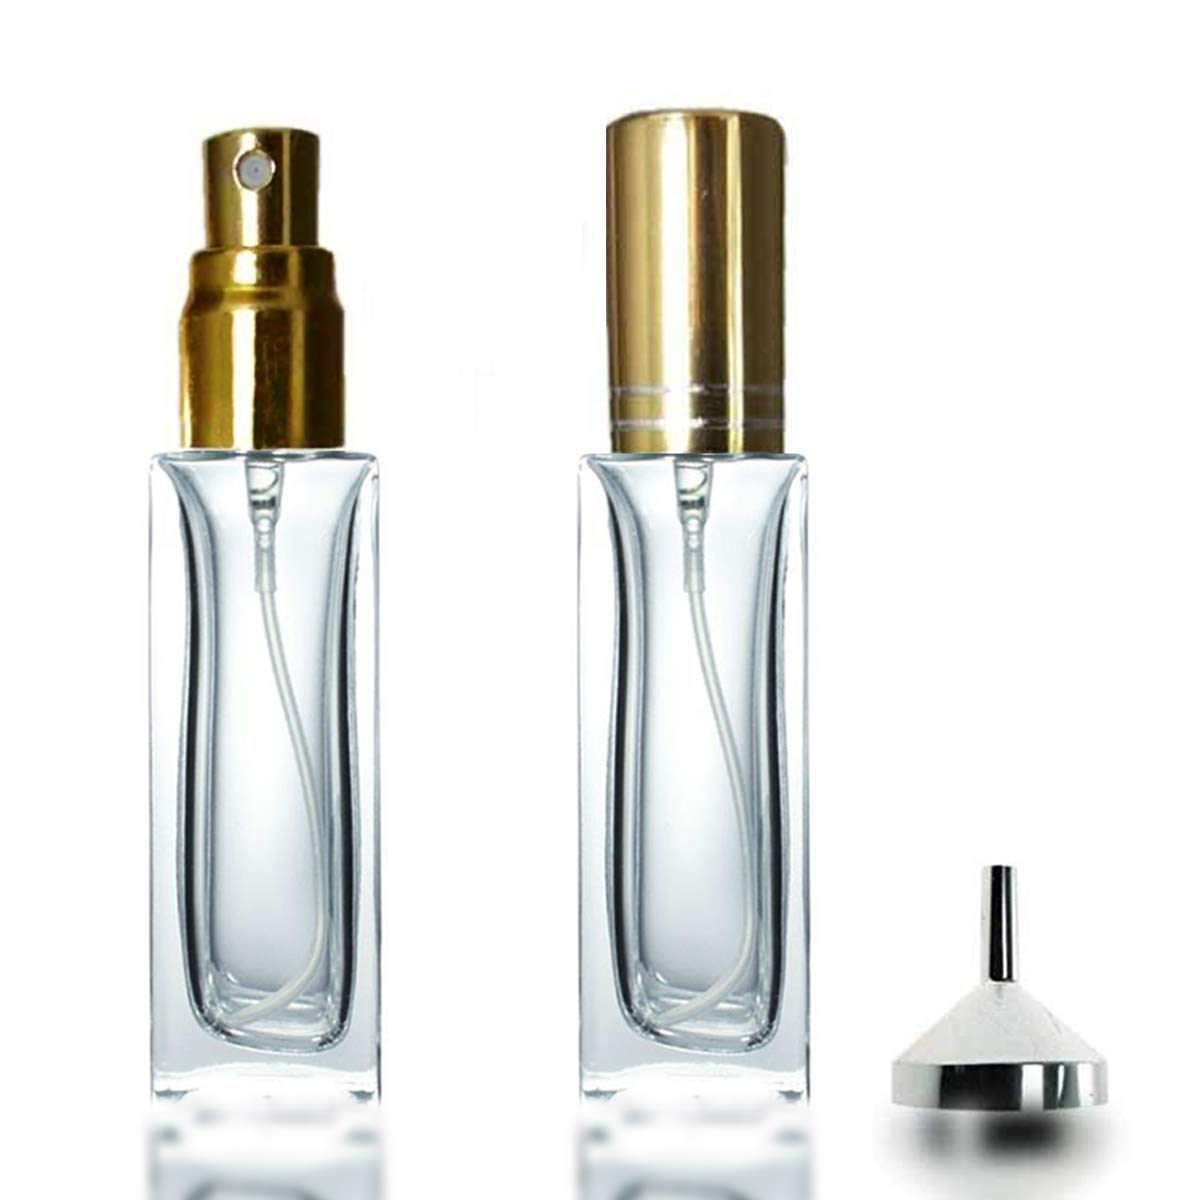 bbc305e916a5 Details about Glass Perfume Atomiser 2 x 20ml Square refillable Bottles  with a Small Metal...